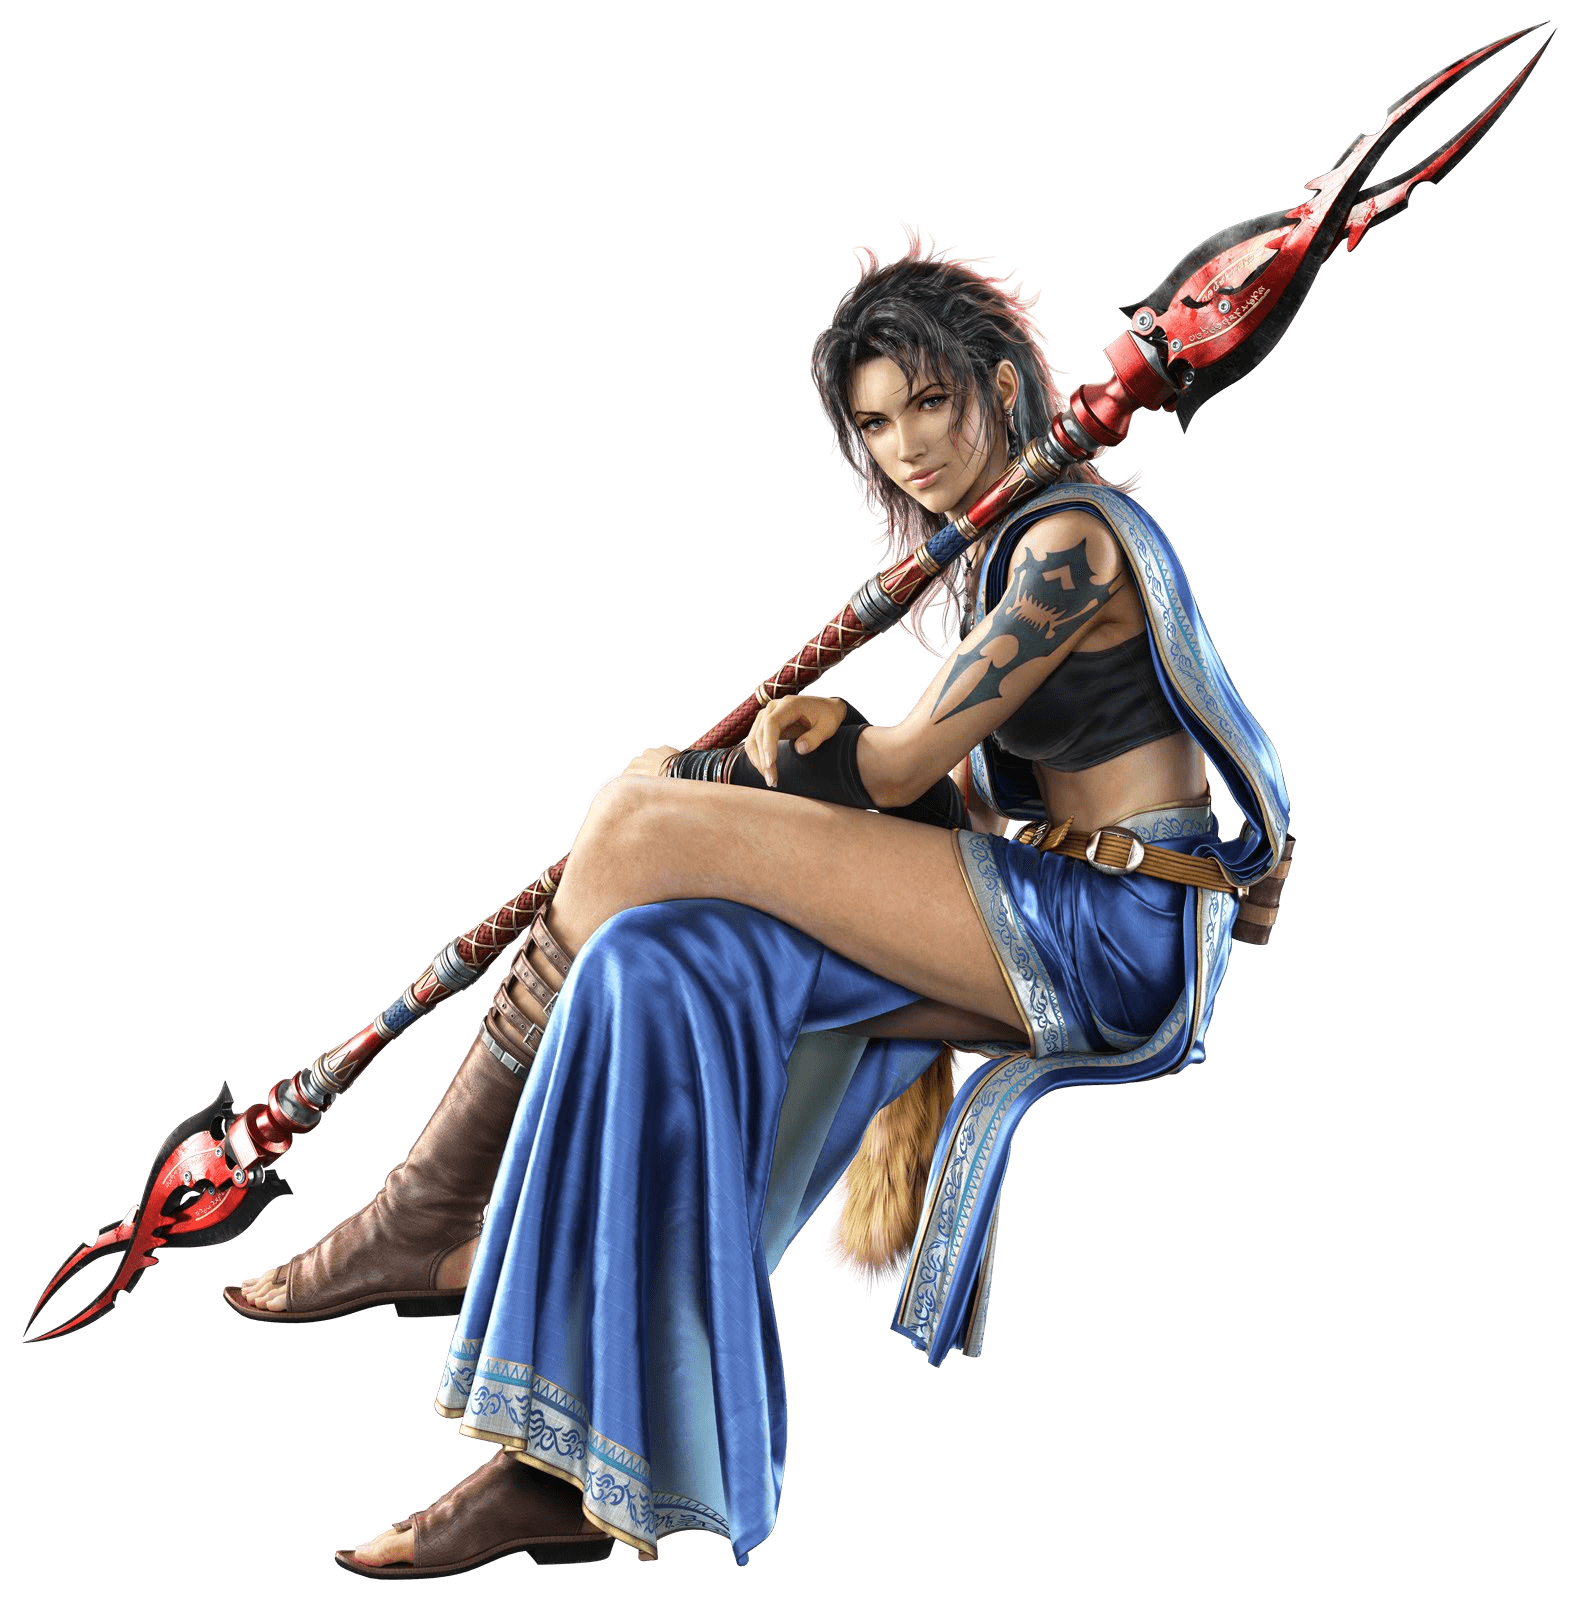 Final Fantasy Png - Final Fantasy Sitting Sideview, Transparent background PNG HD thumbnail